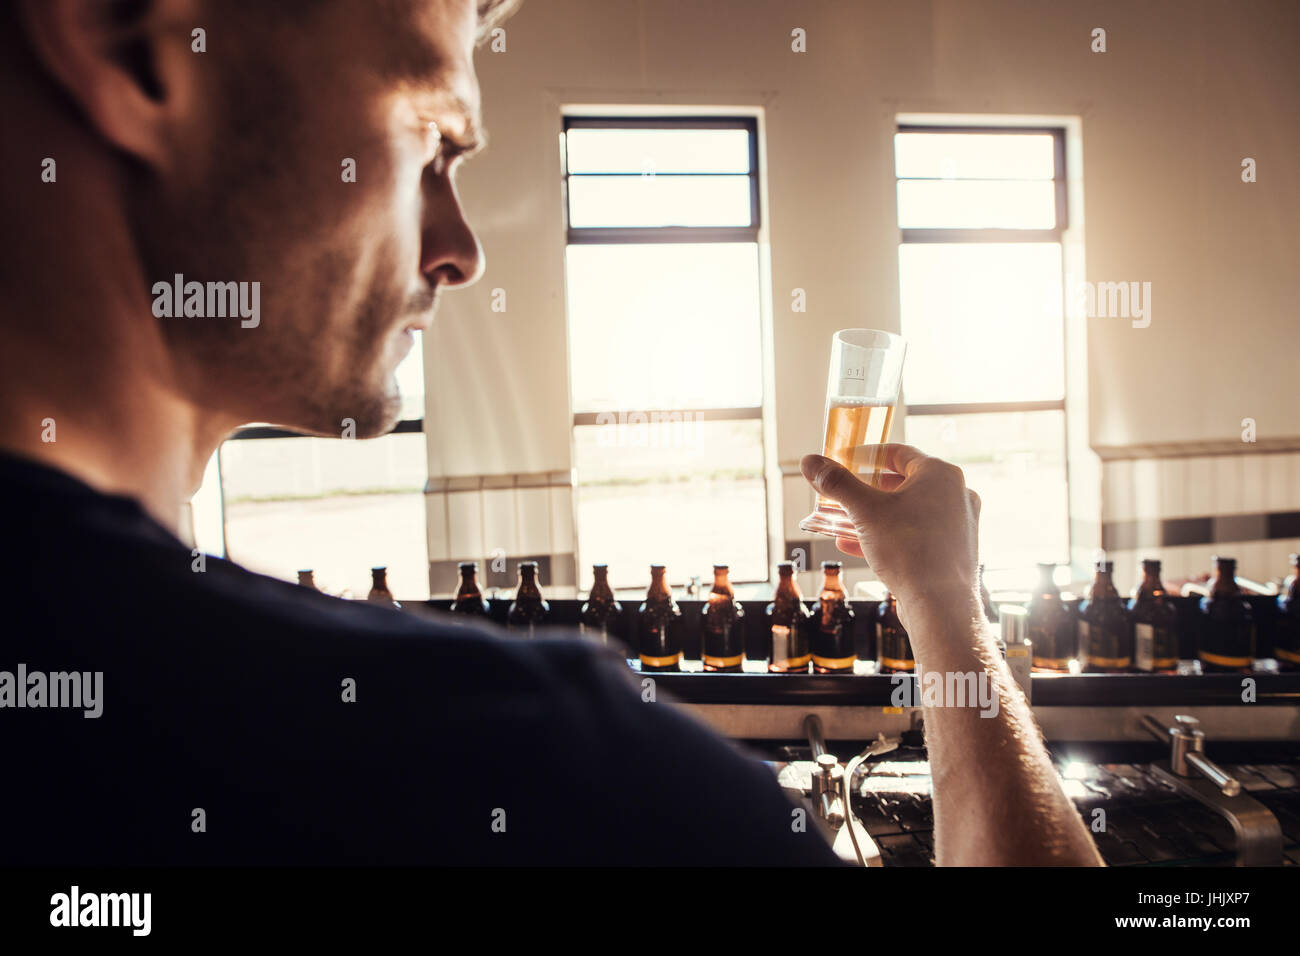 Male brewer testing craft beer at brewery factory. Young man examining the beer sample glass during manufacturing. - Stock Image